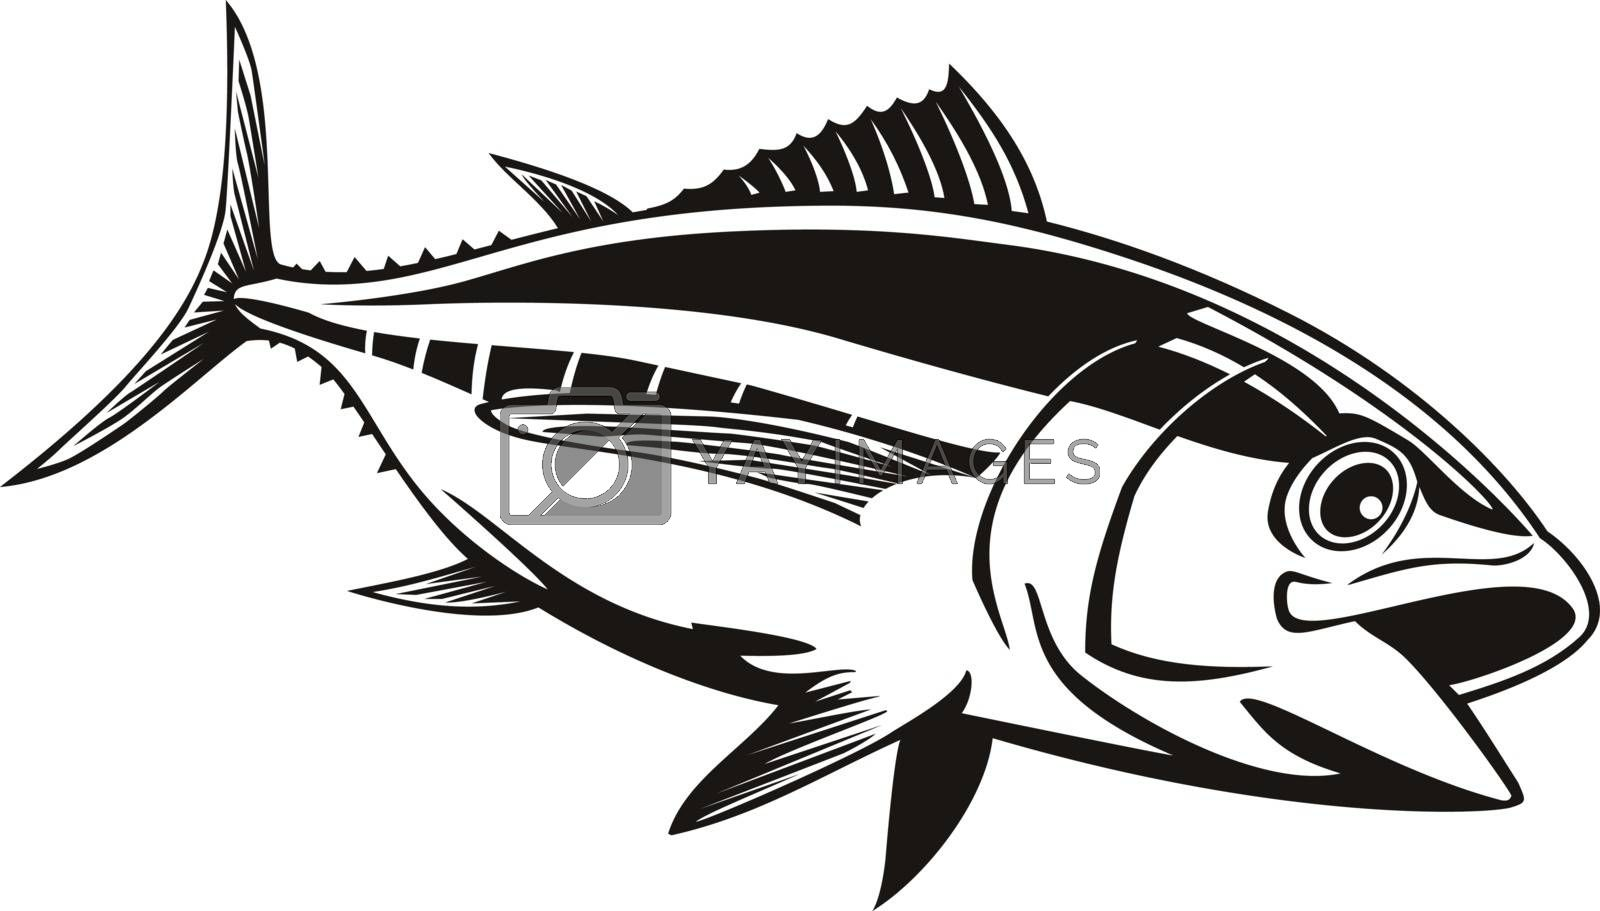 Retro style illustration of a bigeye tuna thunnus obesus, a species of true tuna of genus thunnus, belonging to the mackerel family scombridae swimming on isolated background done in black and white.